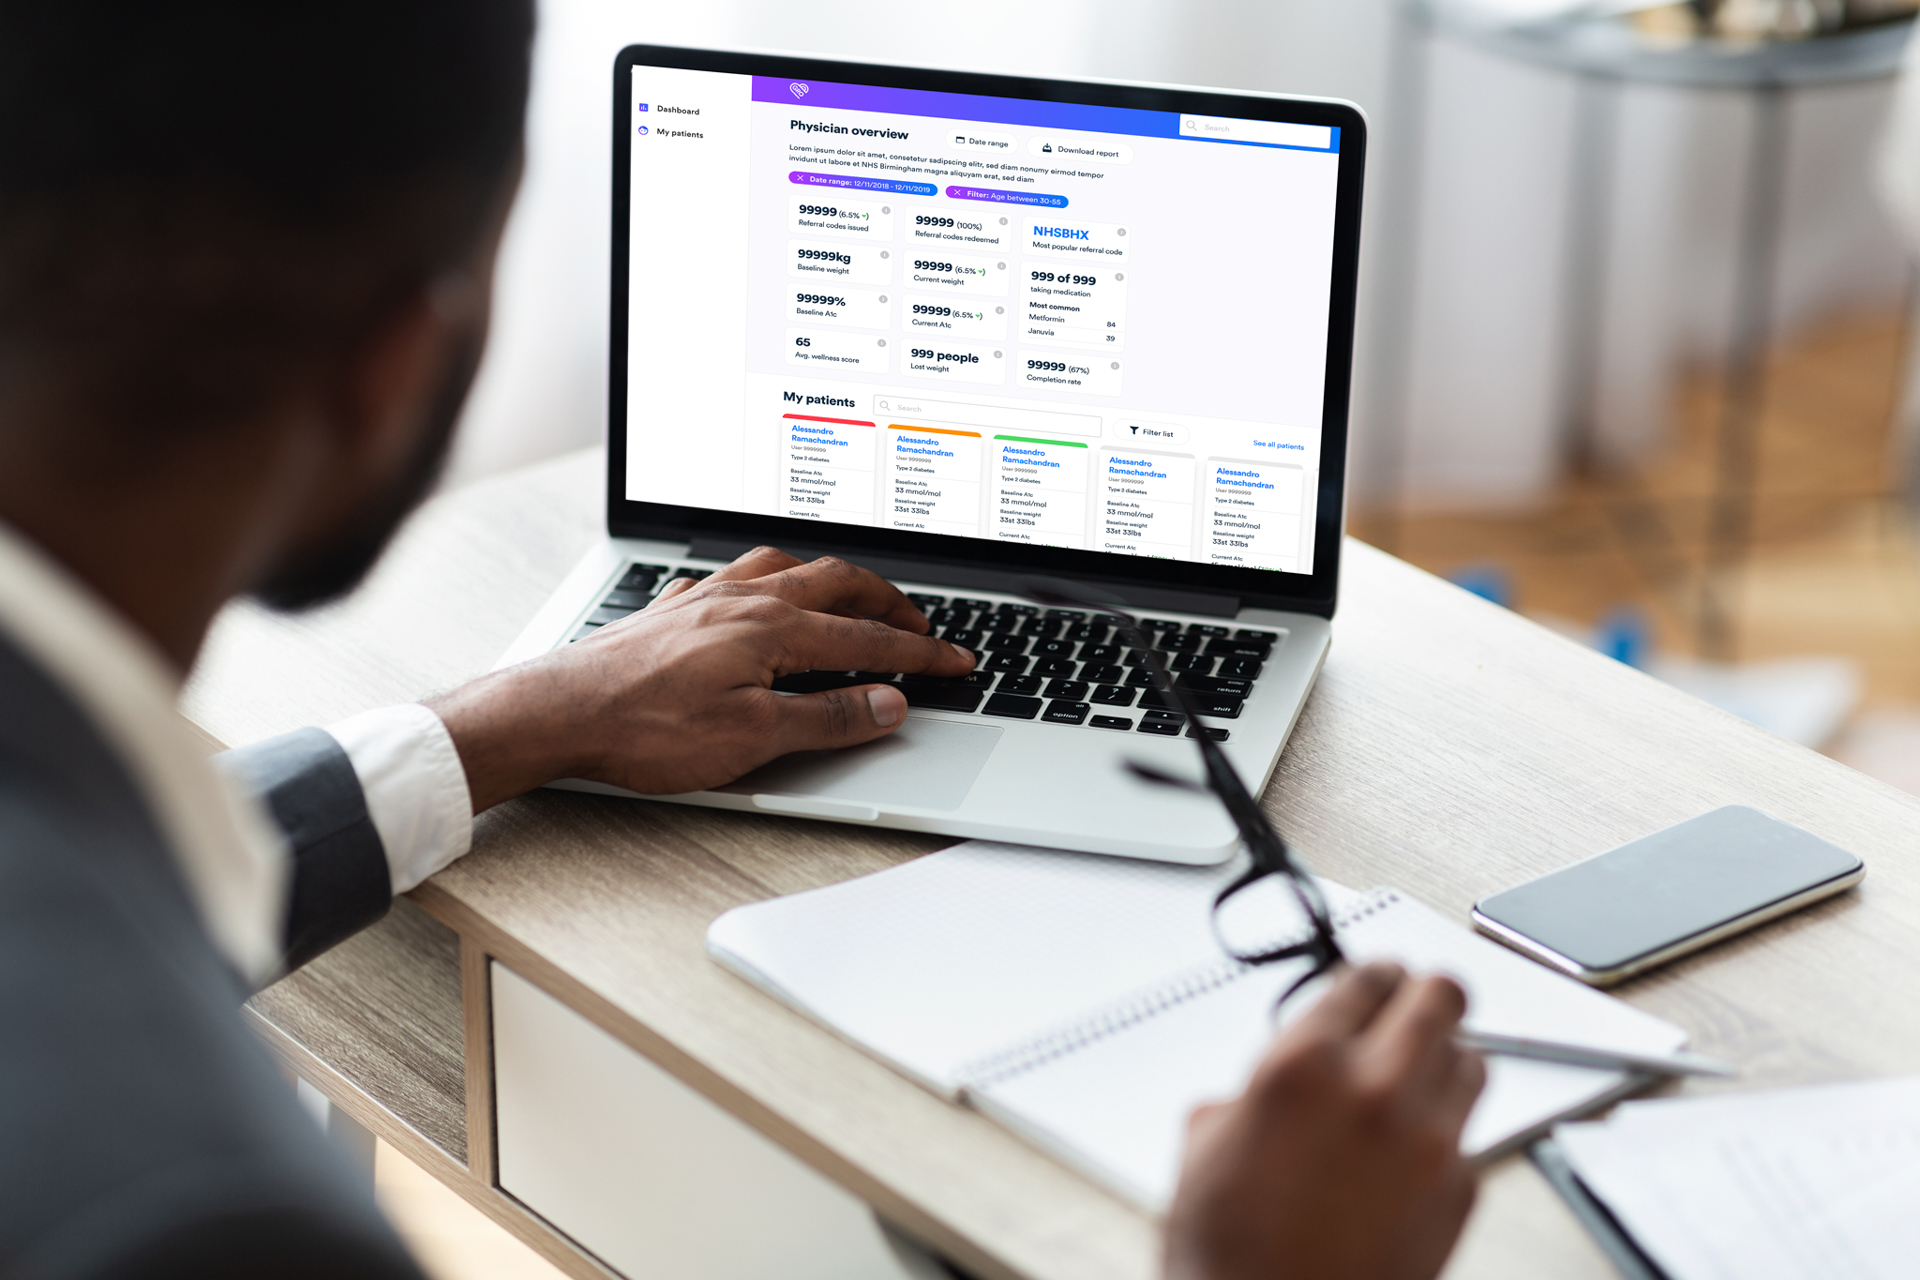 Man in a suit using the Gro Clinical Dashboard